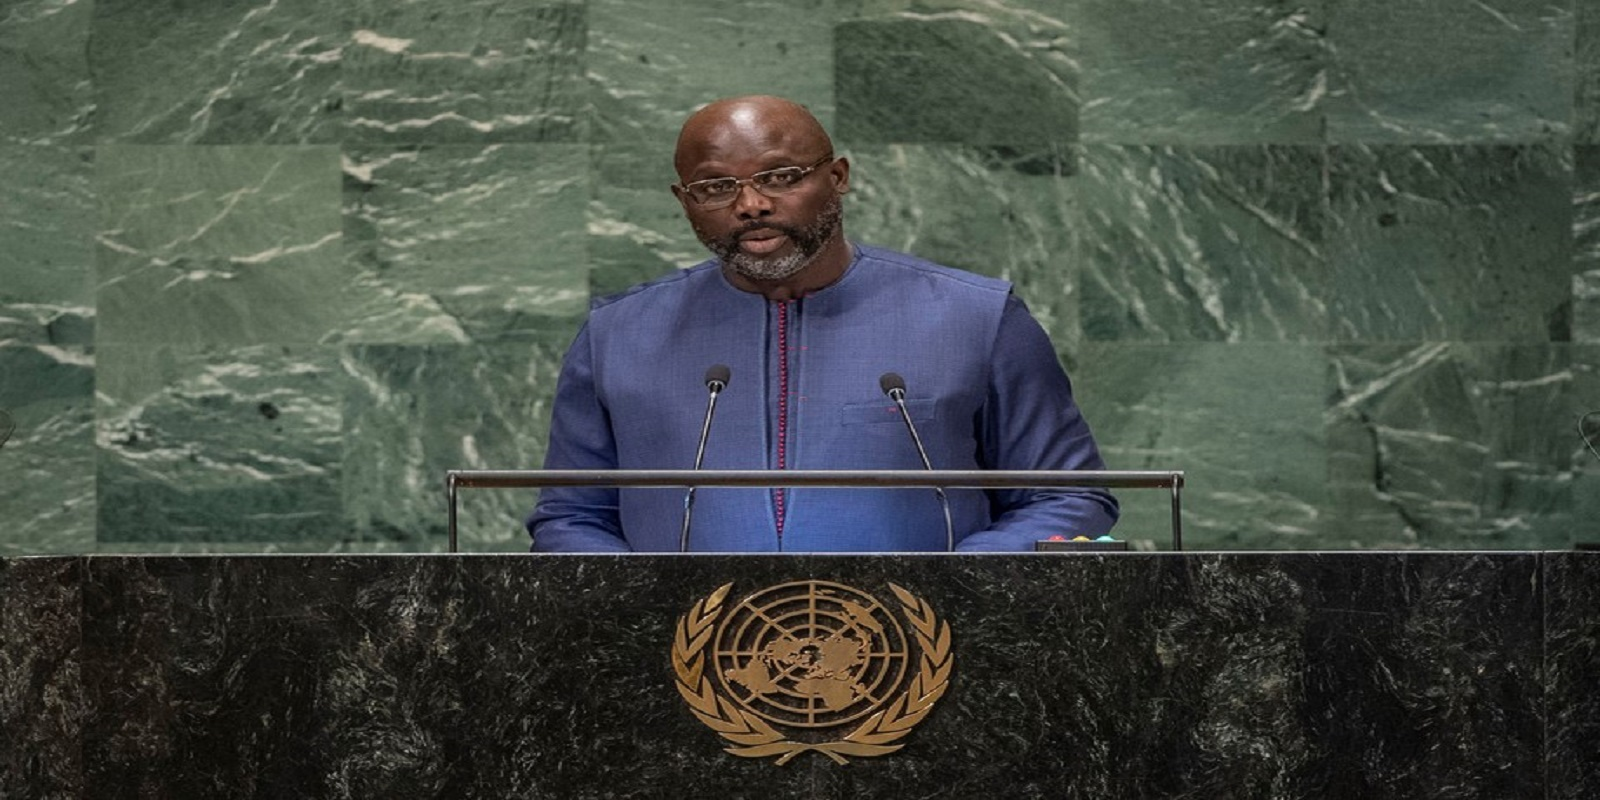 H.E. George Manneh Weah addresses 73rd Session of the United Nations General Assembly